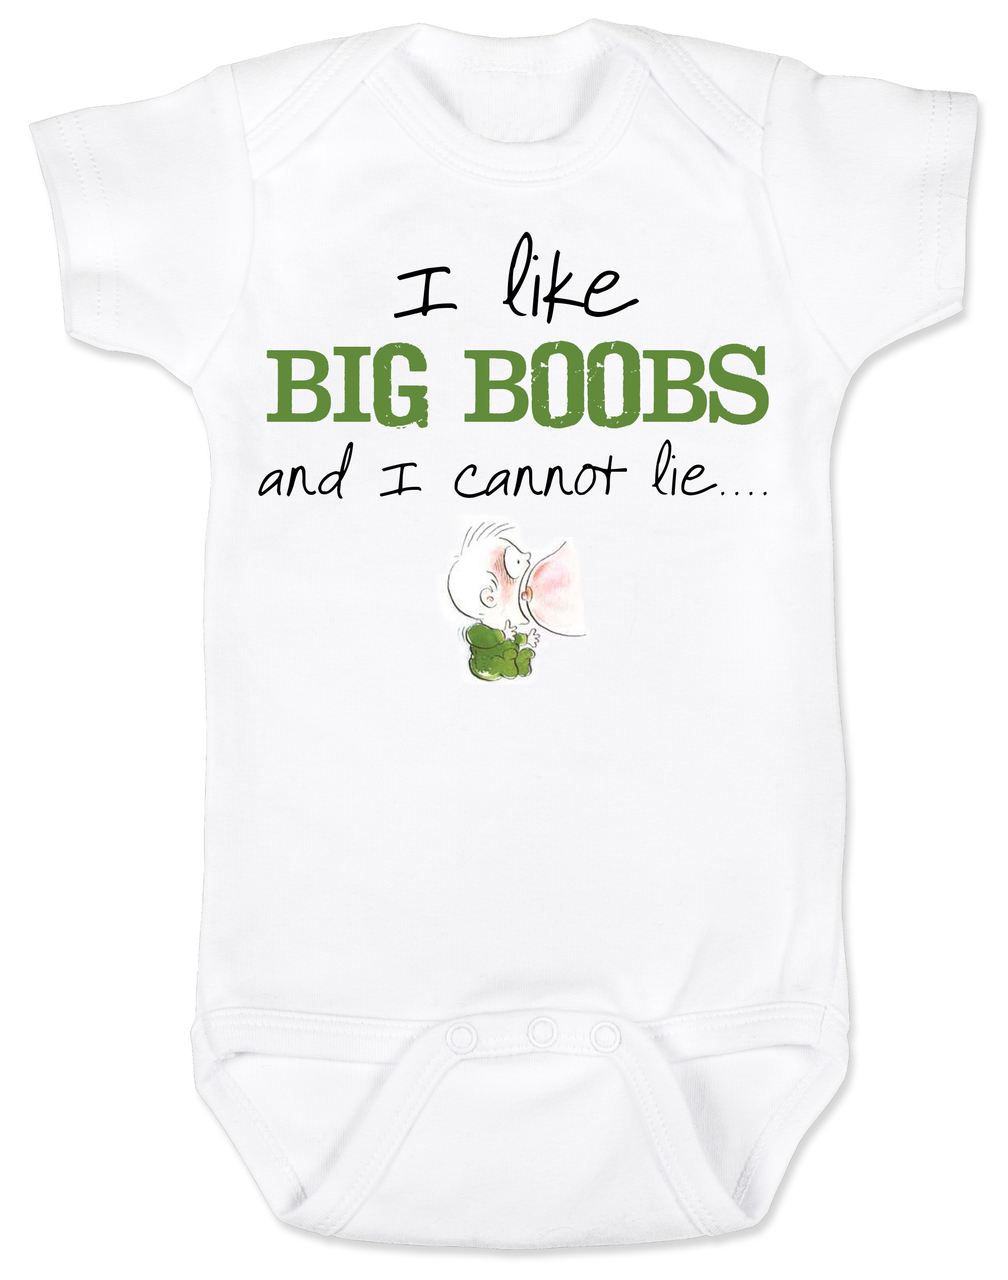 Uncategorized Onesie For Baby Shower i like big boobs baby onesie funny shower gag gifts unique gifts